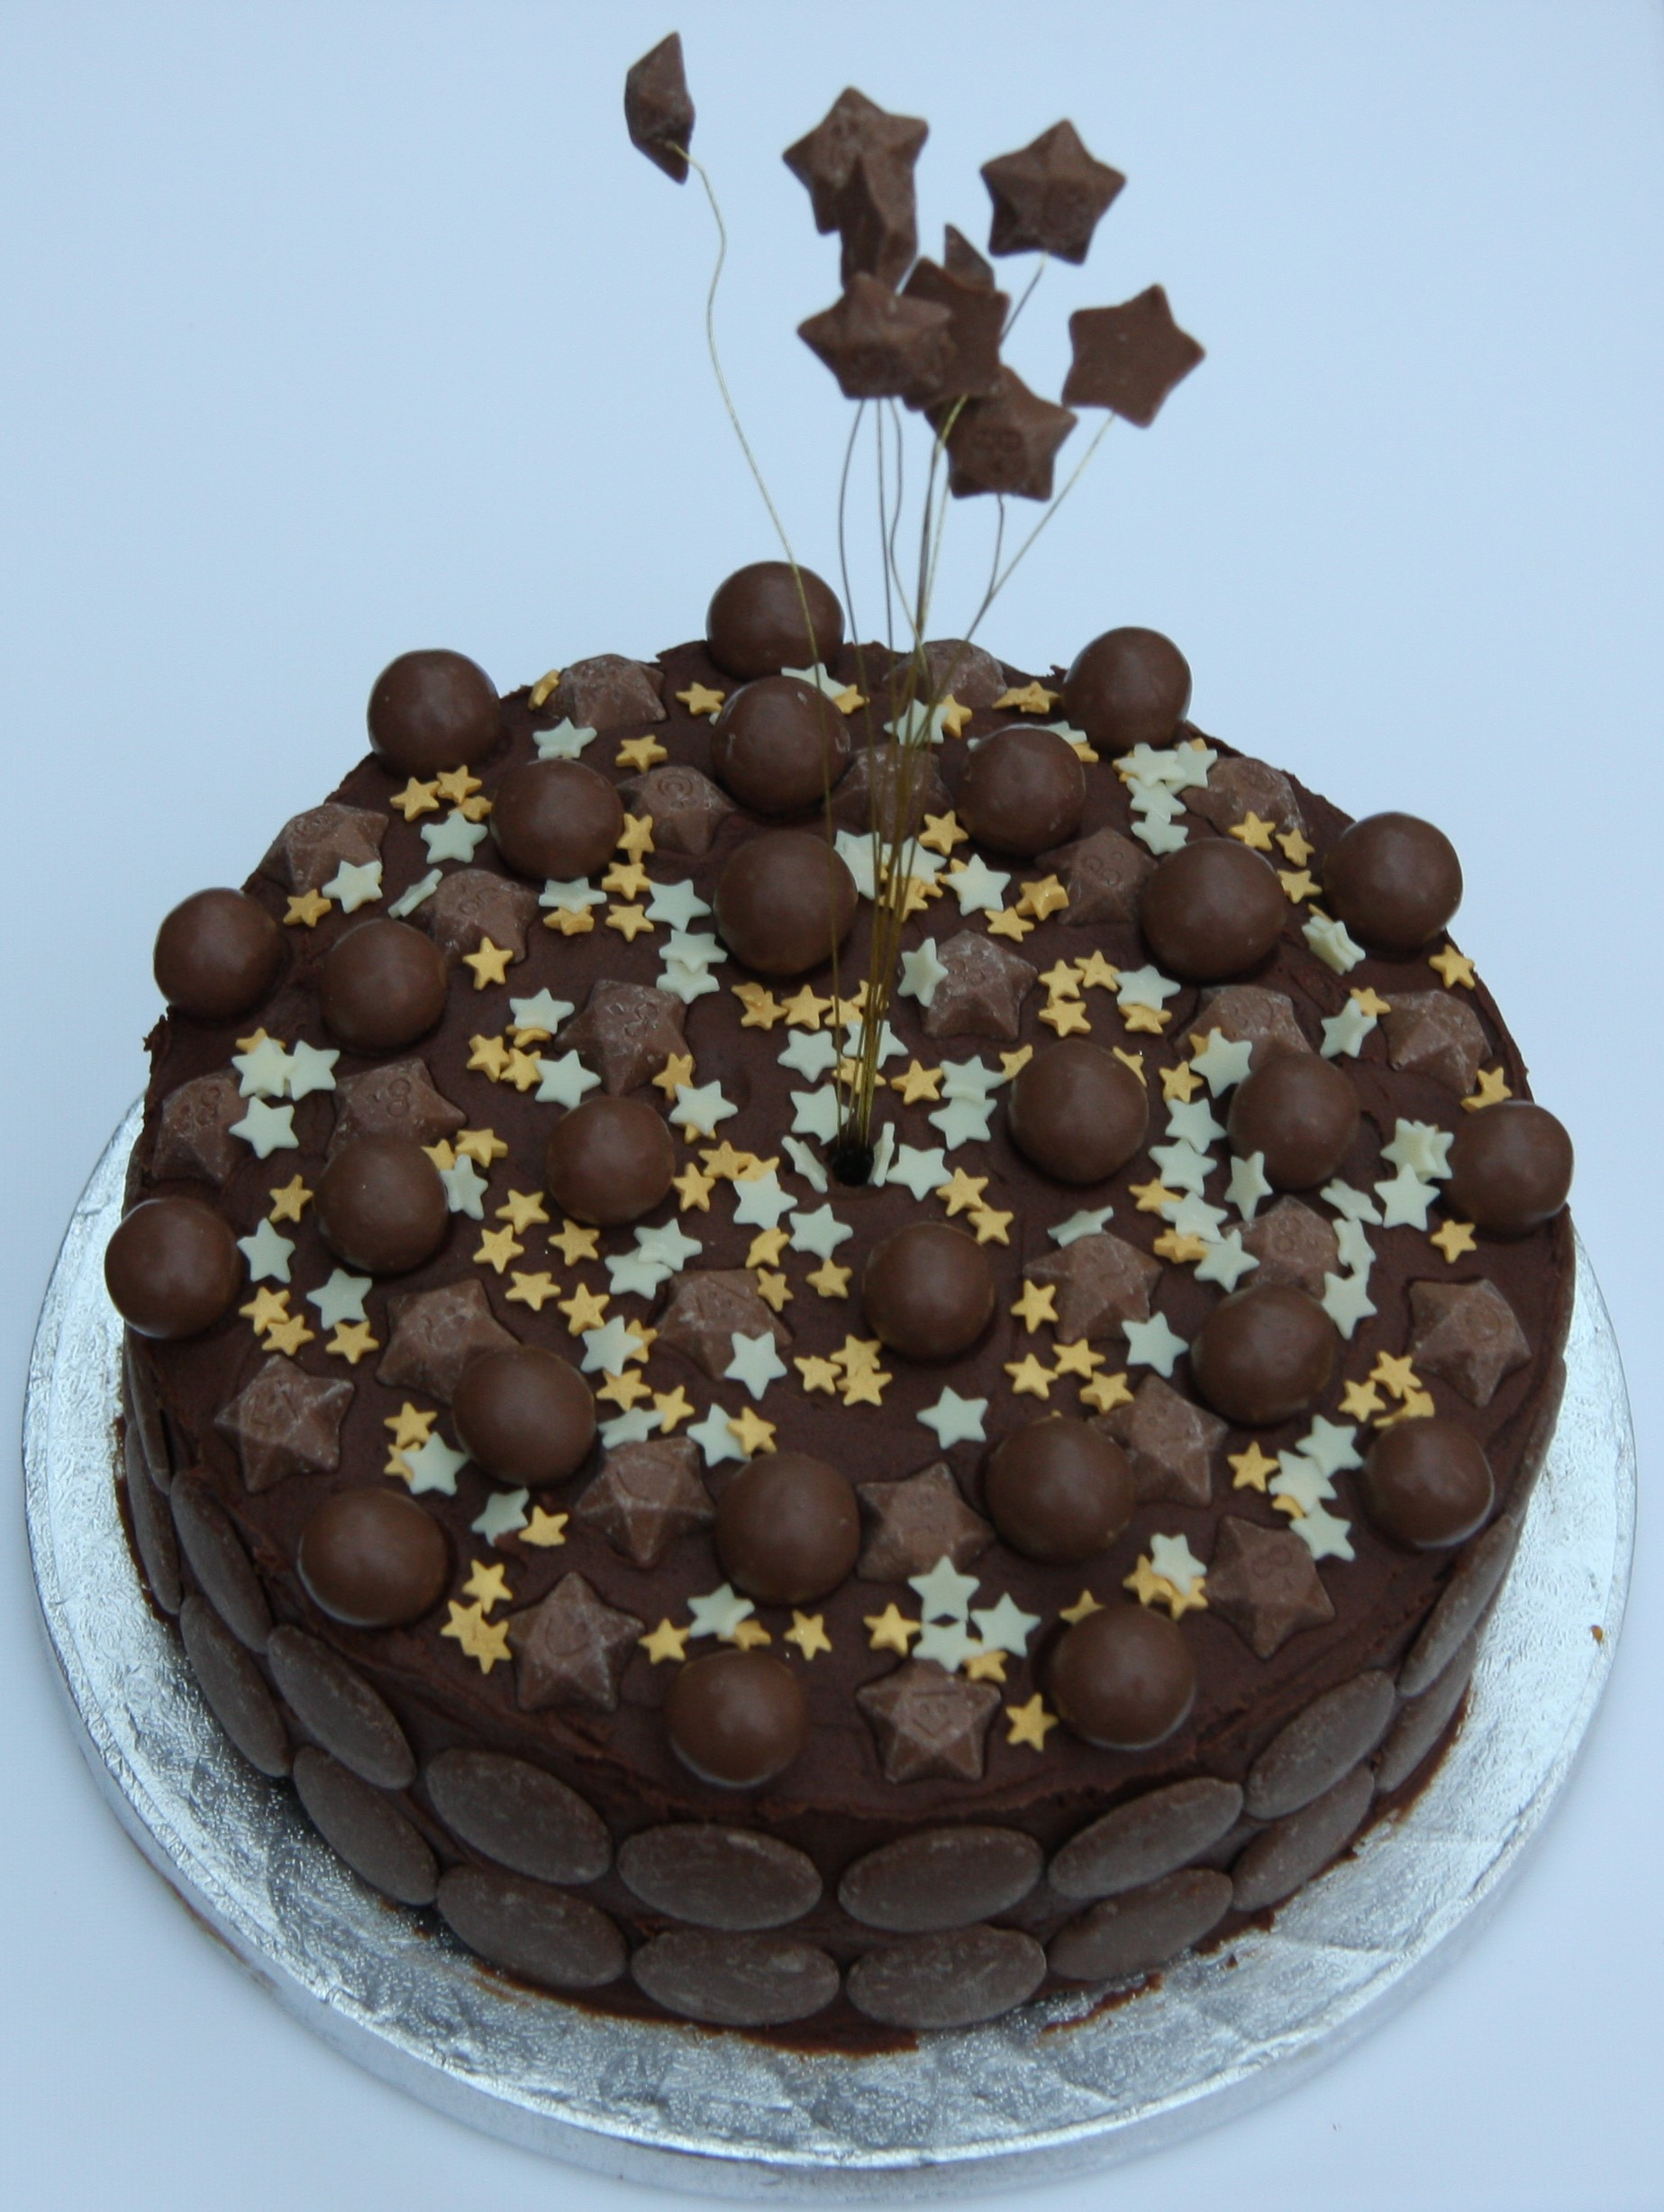 Chocolate Birthday Cake For Kids And Chocolate Lovers